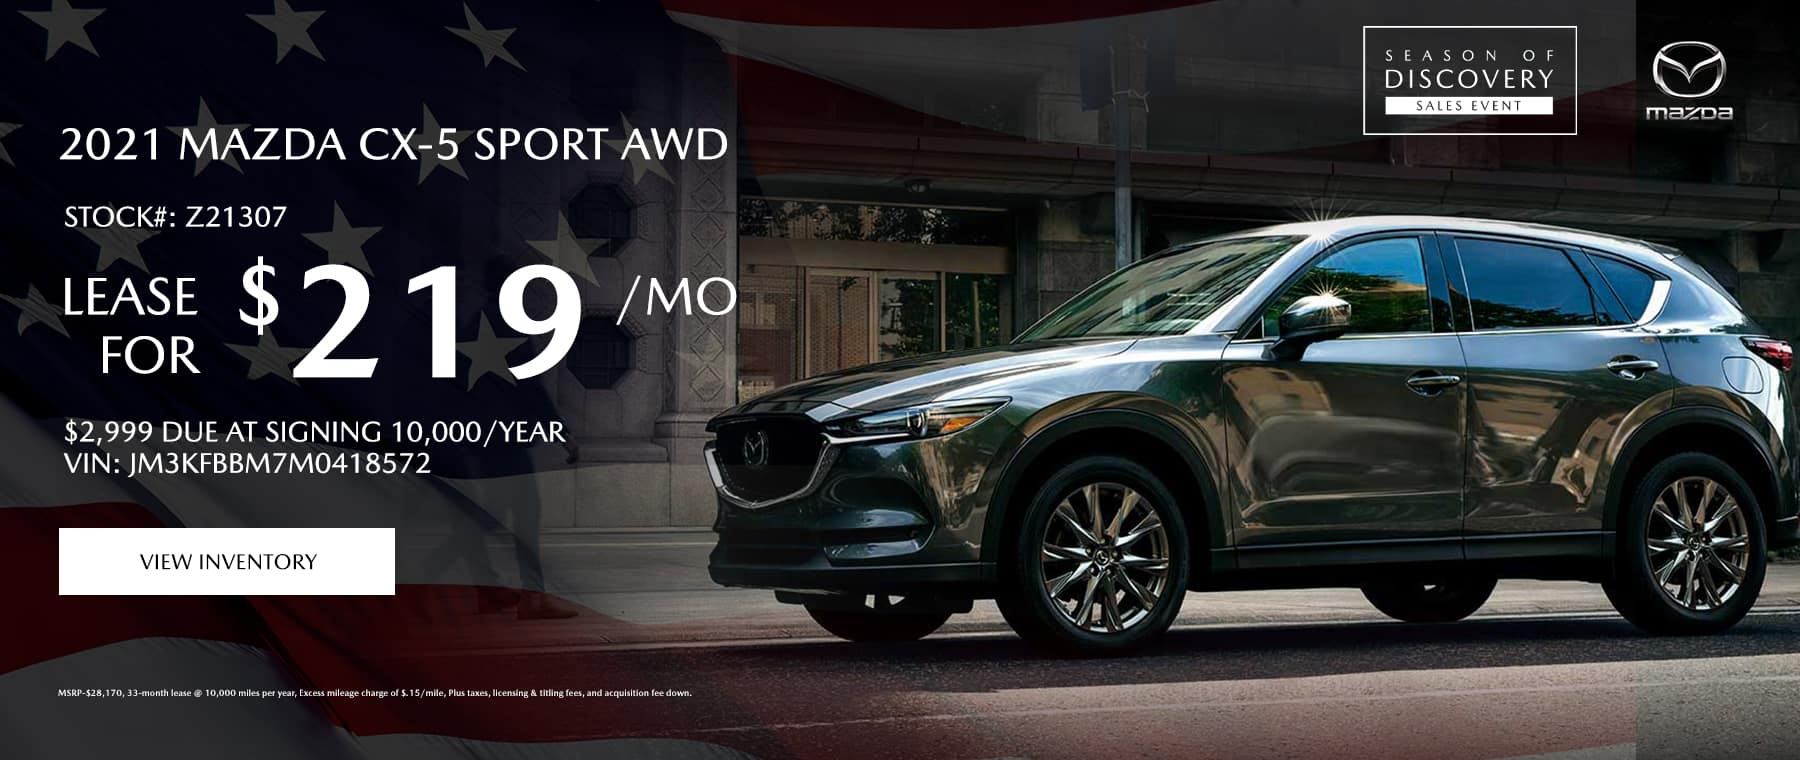 2021 Mazda CX-5 Sport AWD Stock#: Z21307 $219/Month $2,999 Due at Signing 10,000/Year Vin: JM3KFBBM7M0418572